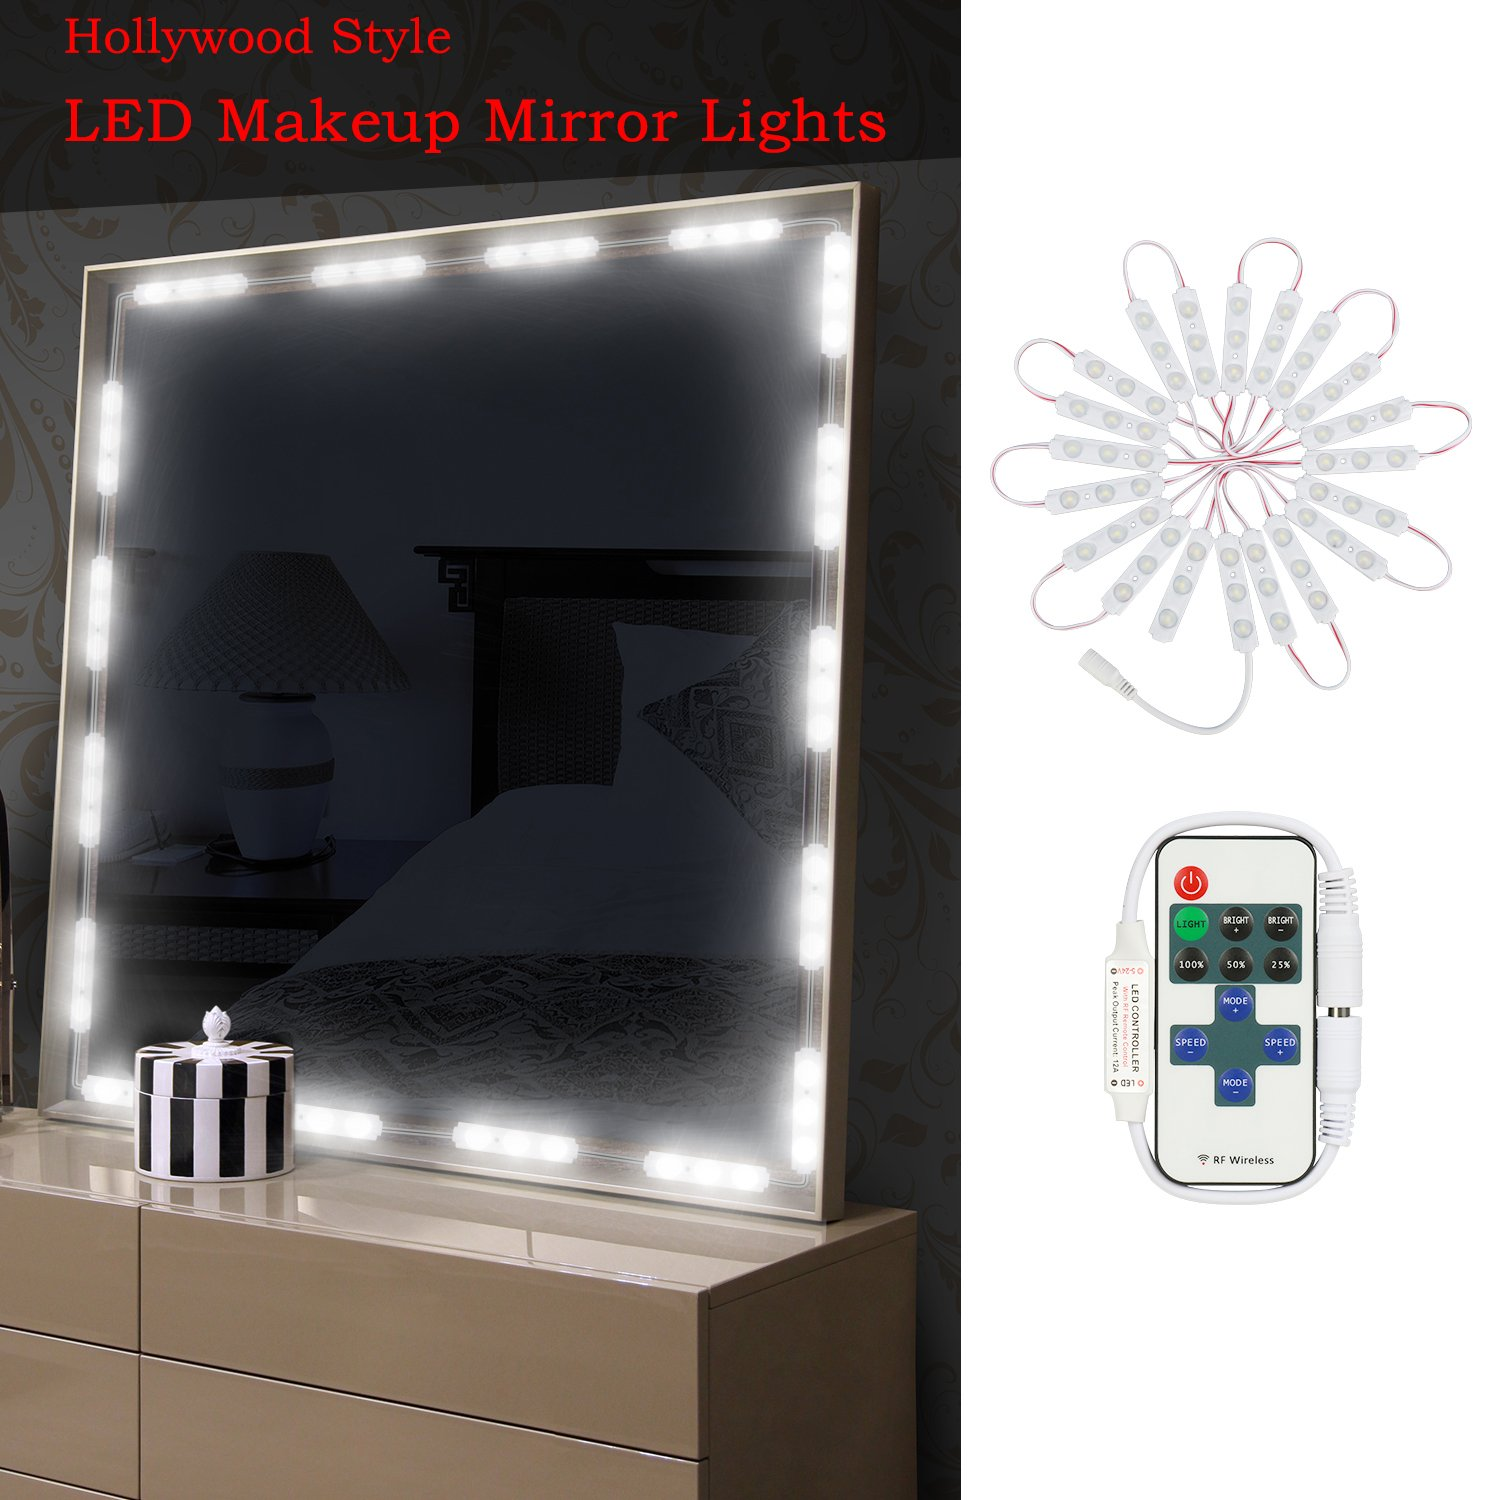 HogarTech Makeup Vanity Mirror Lights, 10 Levels Dimmable 60 LEDs 9.8FT DIY LED Make-up Light Kit 2800LM for Cosmetic Mirrors with Remote Control - 6000K, White